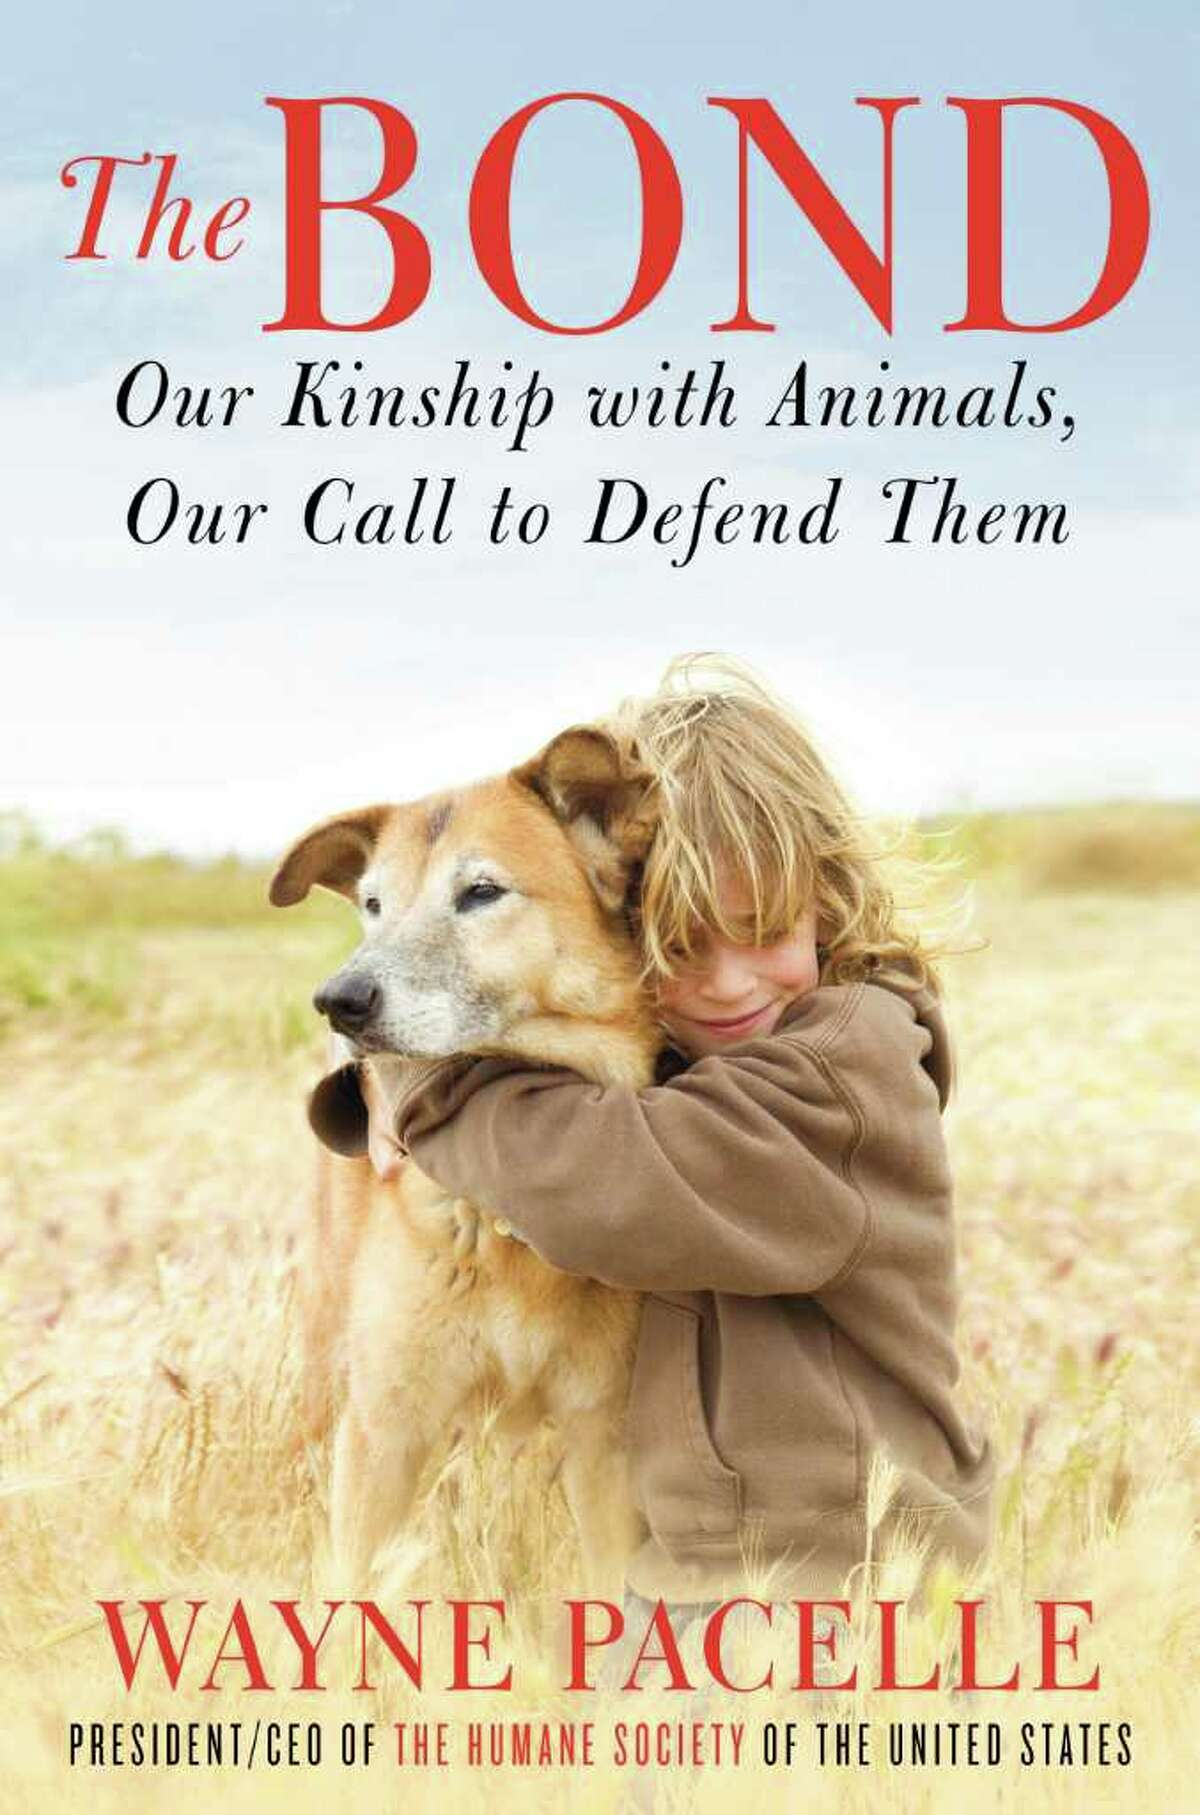 book cover image for The Bond: Our Kinship with Animals; Our Call to Defend Them. by Wayne Pacelle, president and CEO of the Humane Society of the United States